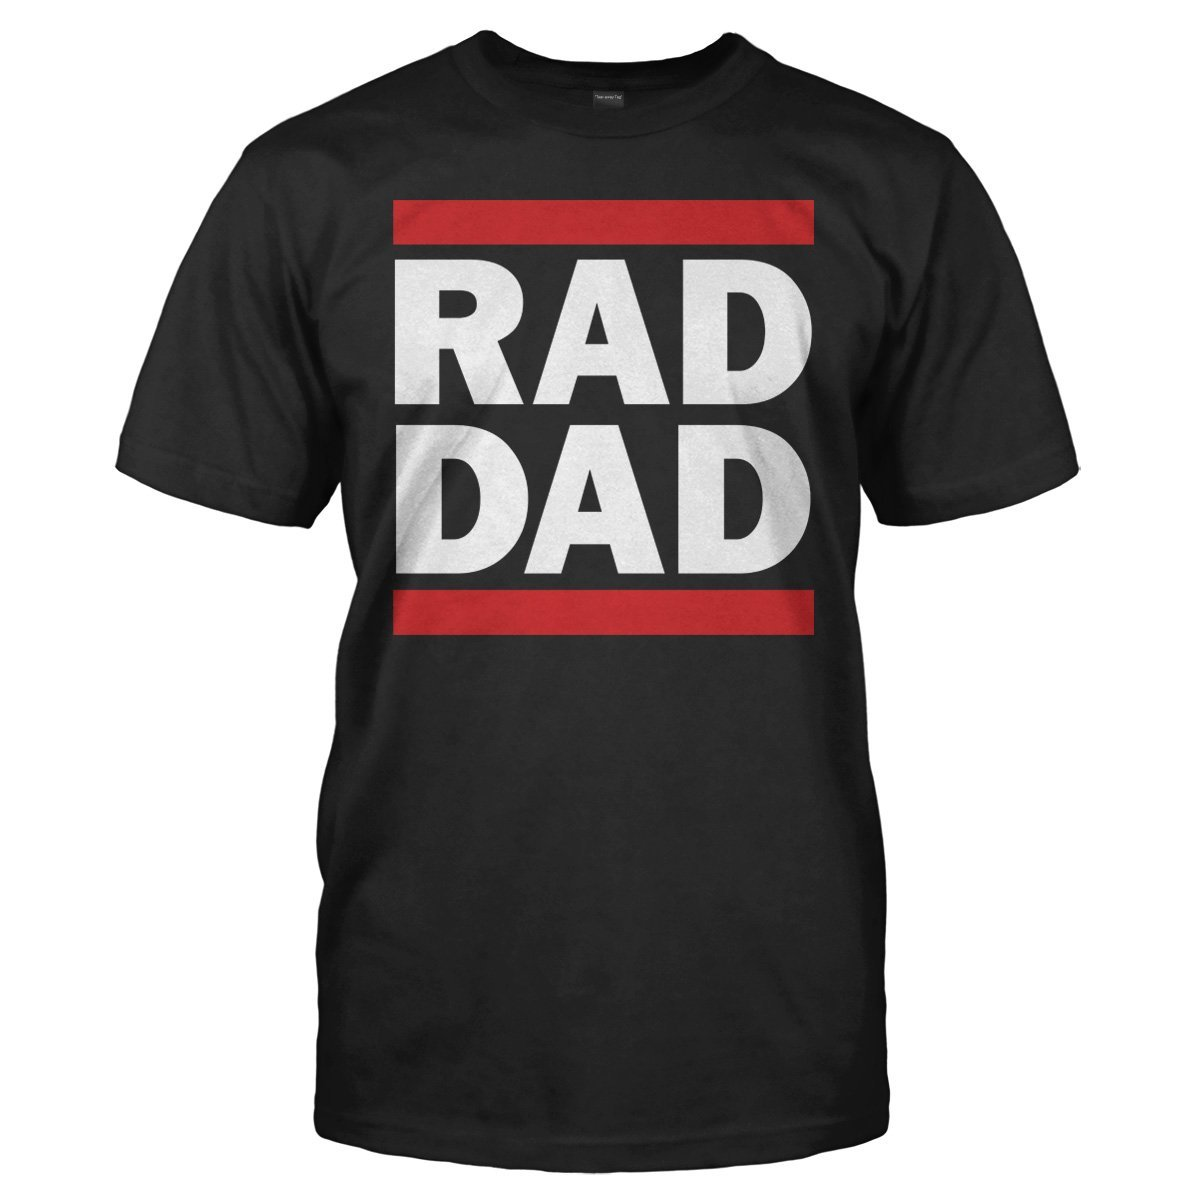 Rad Dad - T Shirt